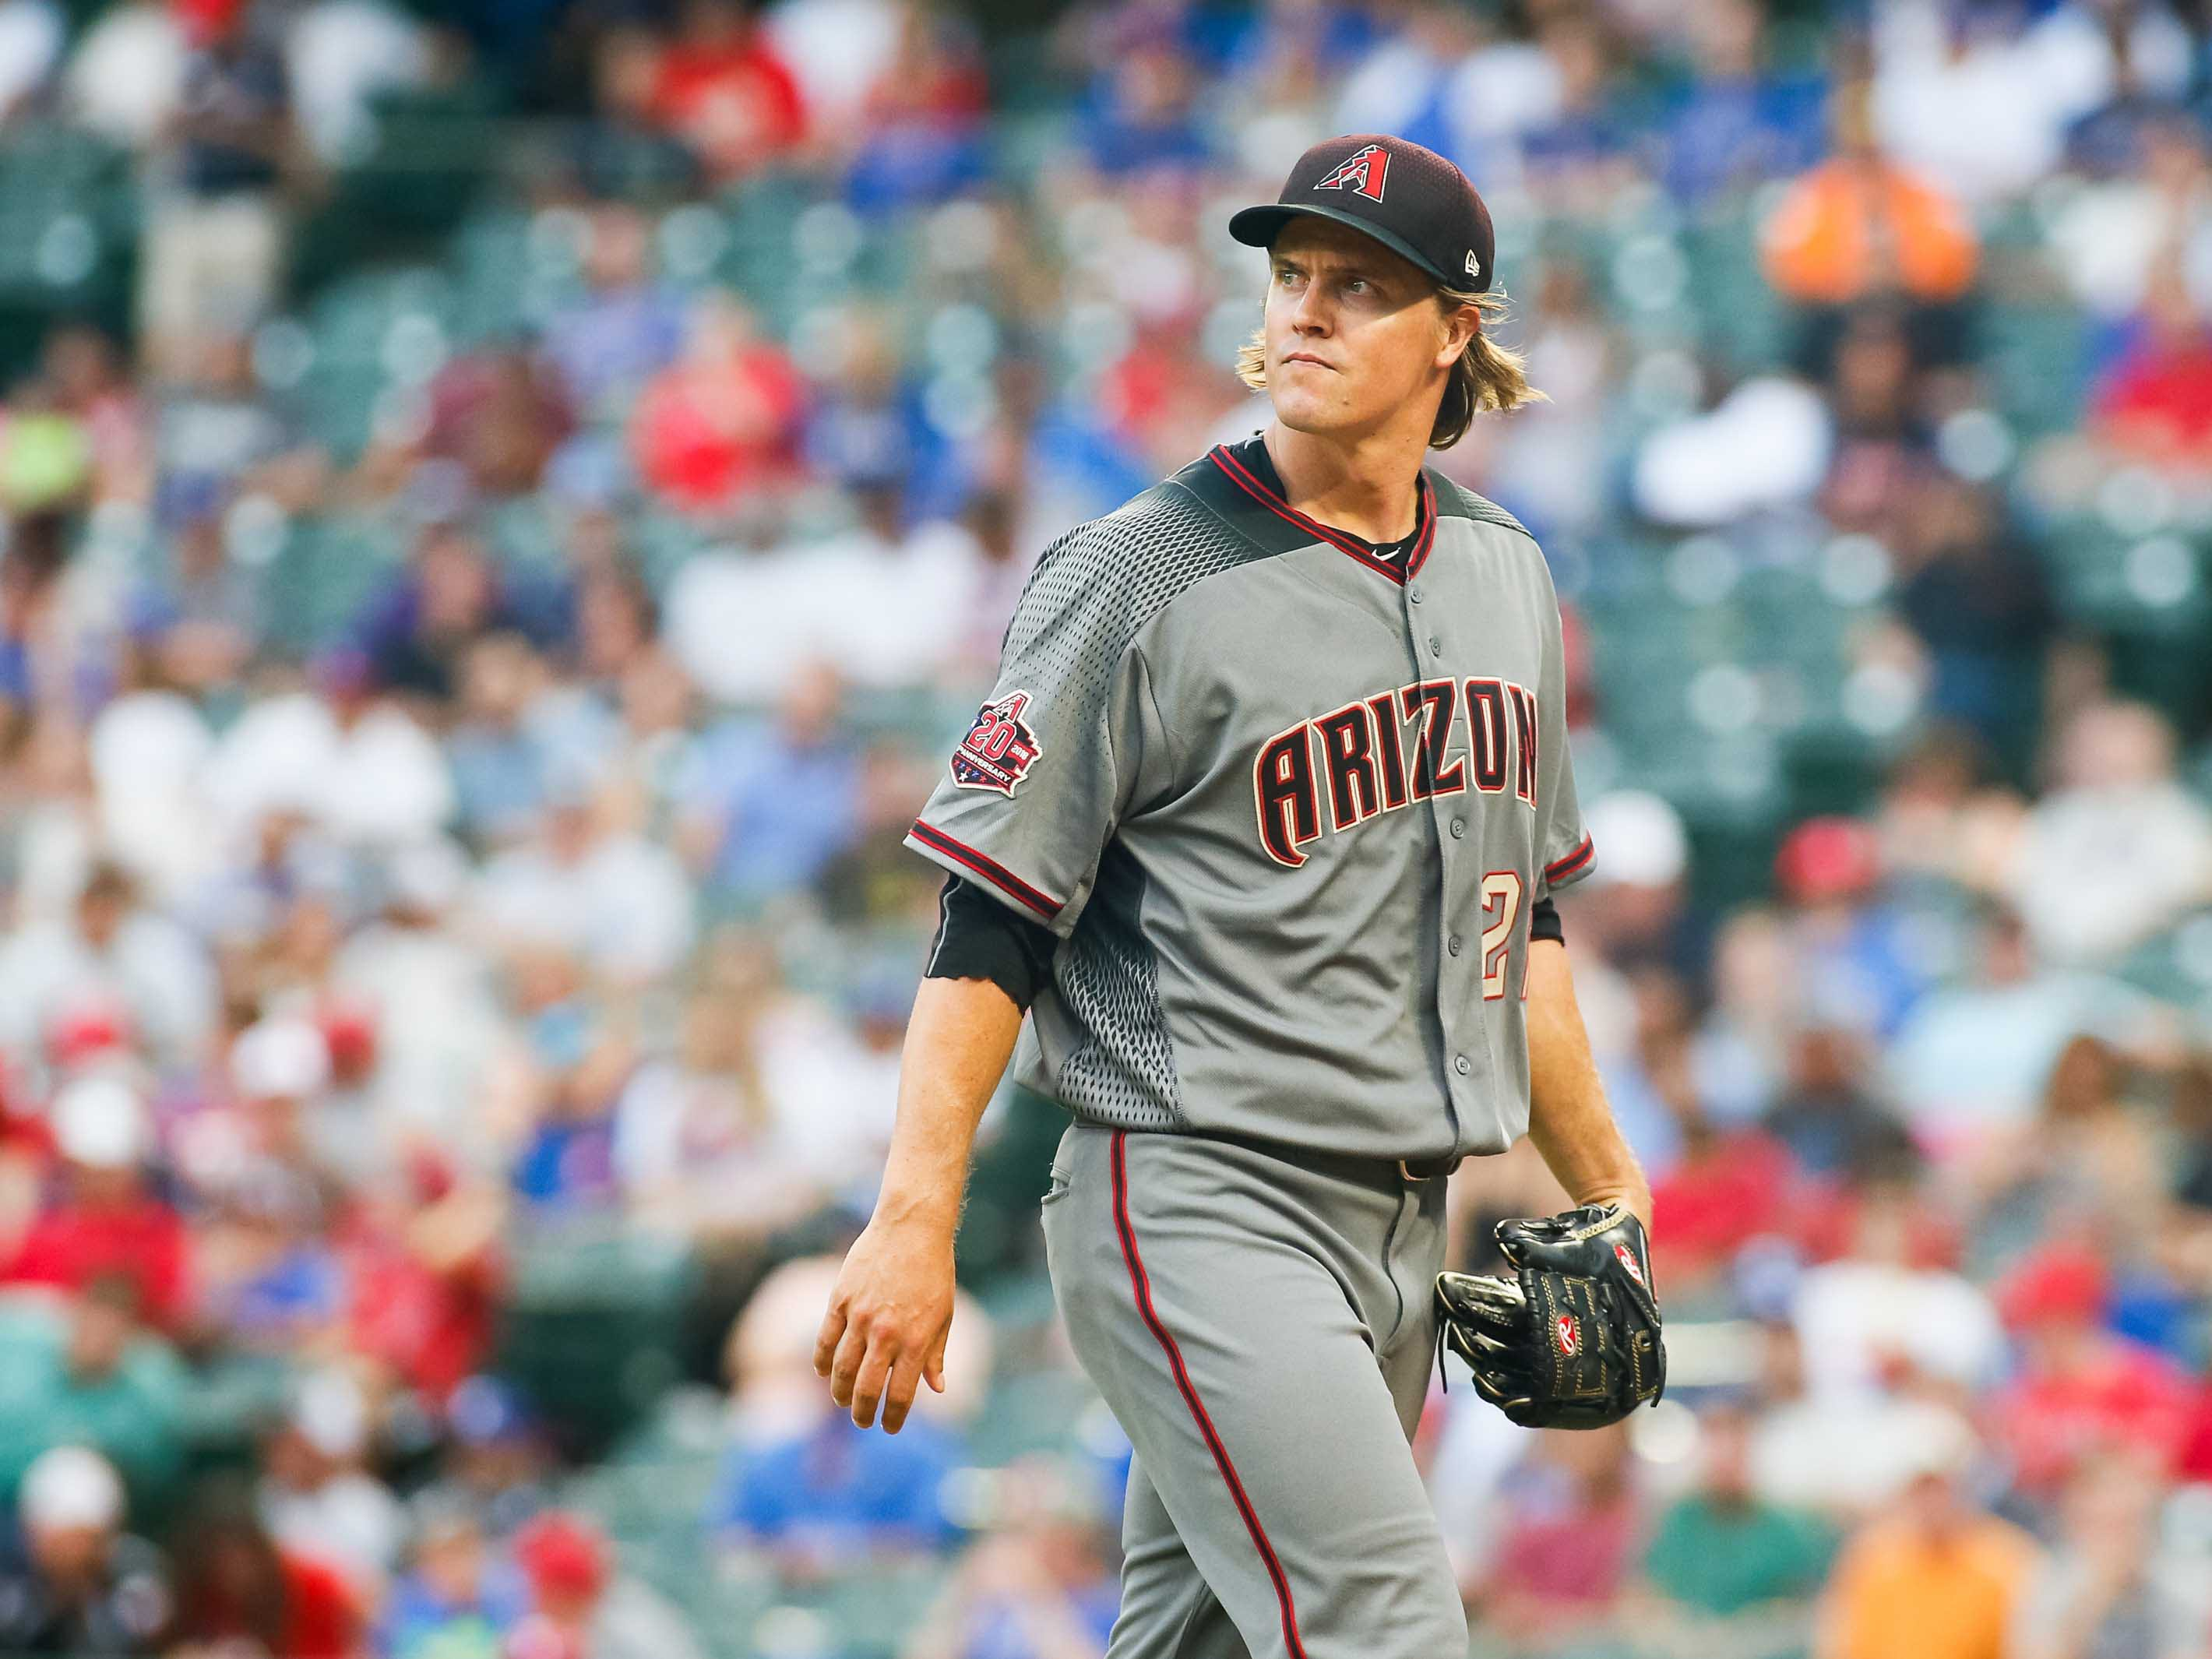 Aug 13, 2018; Arlington, TX, USA; Arizona Diamondbacks starting pitcher Zack Greinke (21) walks to the dugout after retiring the Texas Rangers in the first inning at Globe Life Park in Arlington. Mandatory Credit: Ray Carlin-USA TODAY Sports